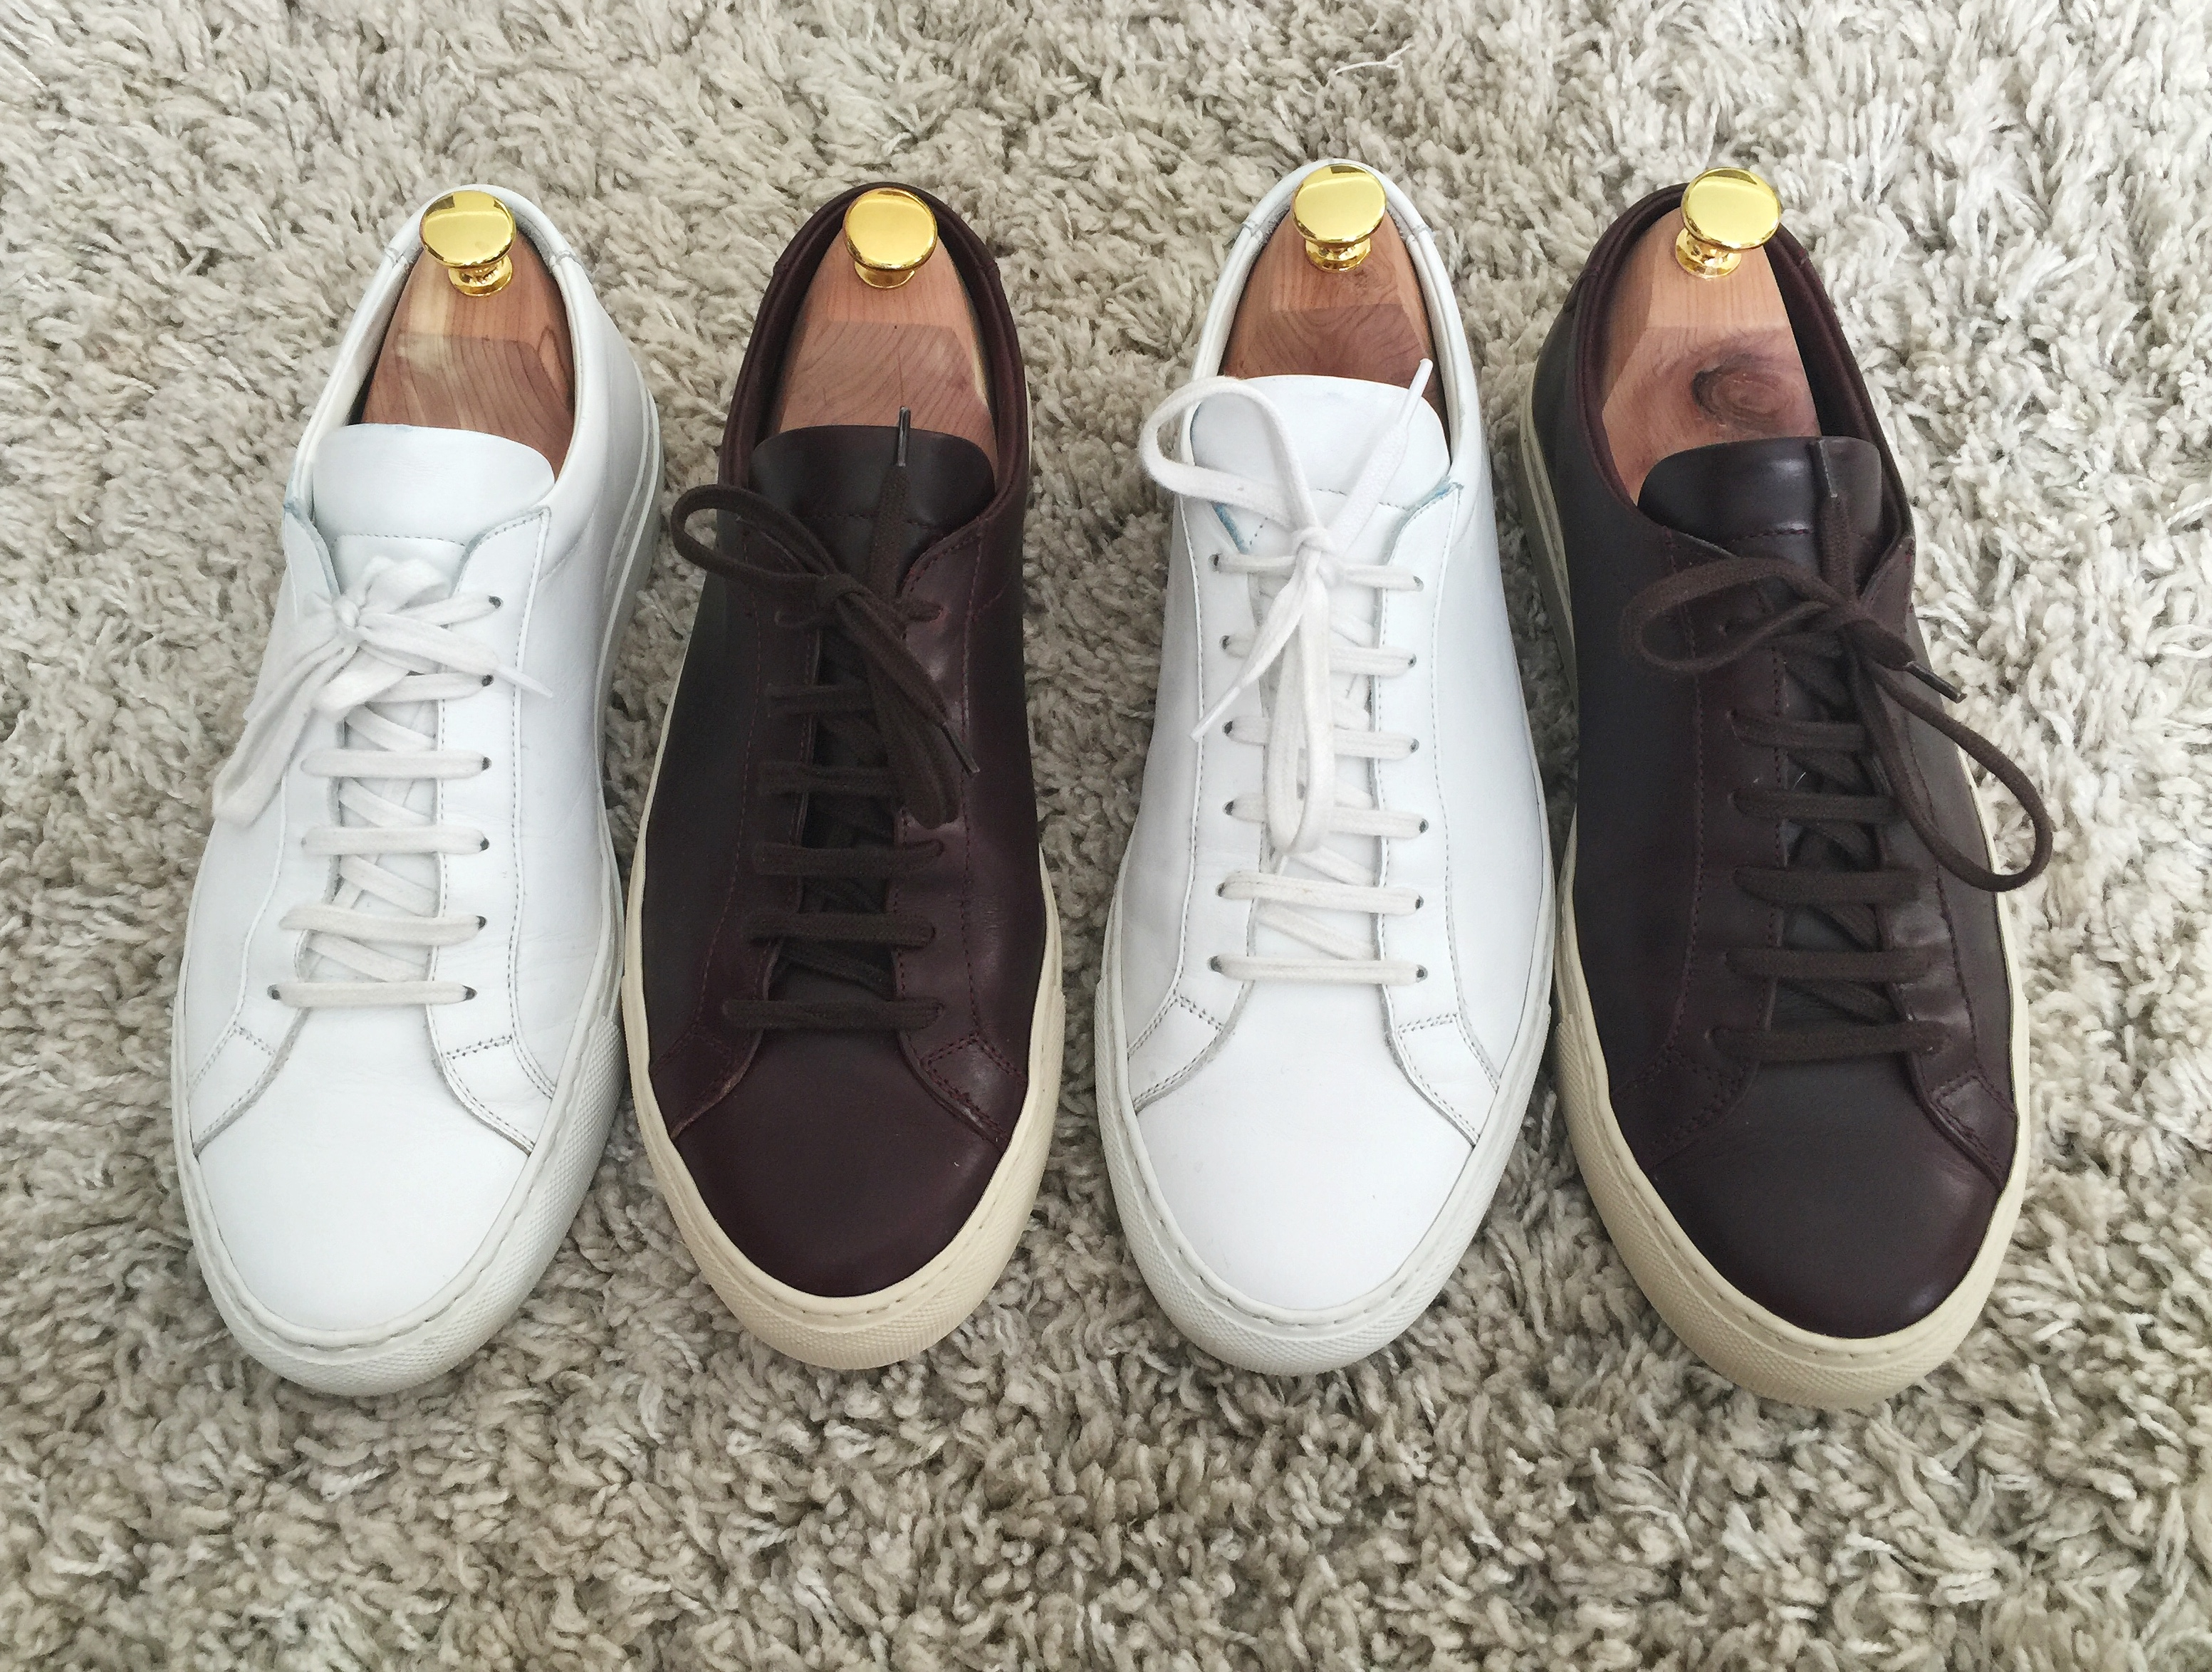 Size Gustin Low Horween Top Tennis 8fits Cxl8 Shoes Sneakers XOZkiuP